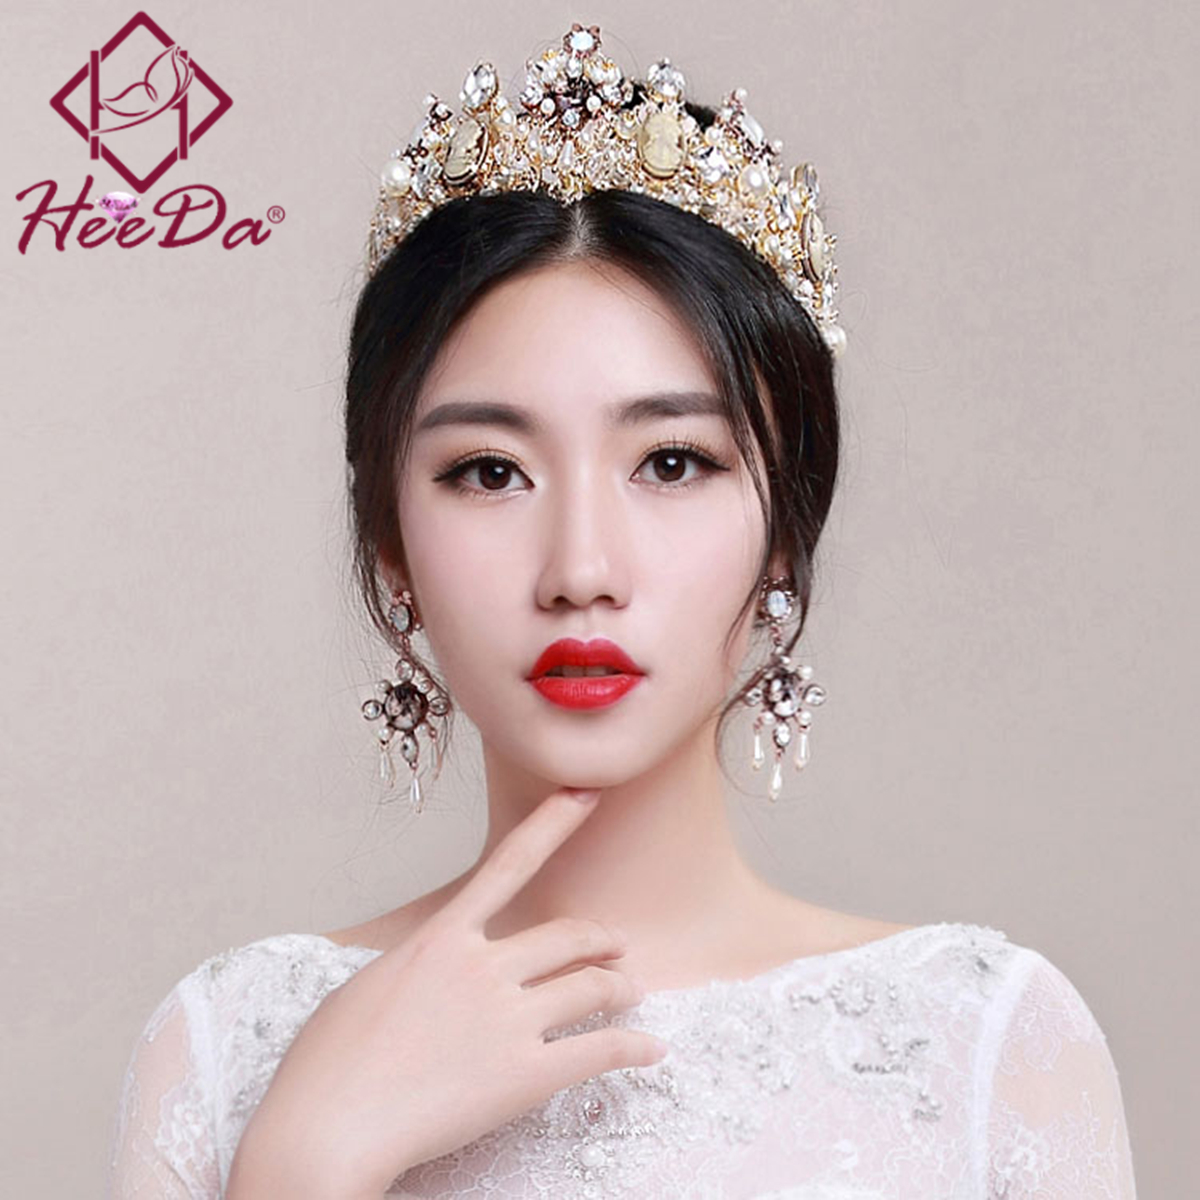 Bride Retro Style Crown Earrings Set Marry Elegant Crown Hair Decorations Sweet and Romantic High-end Wedding Jewelry Set